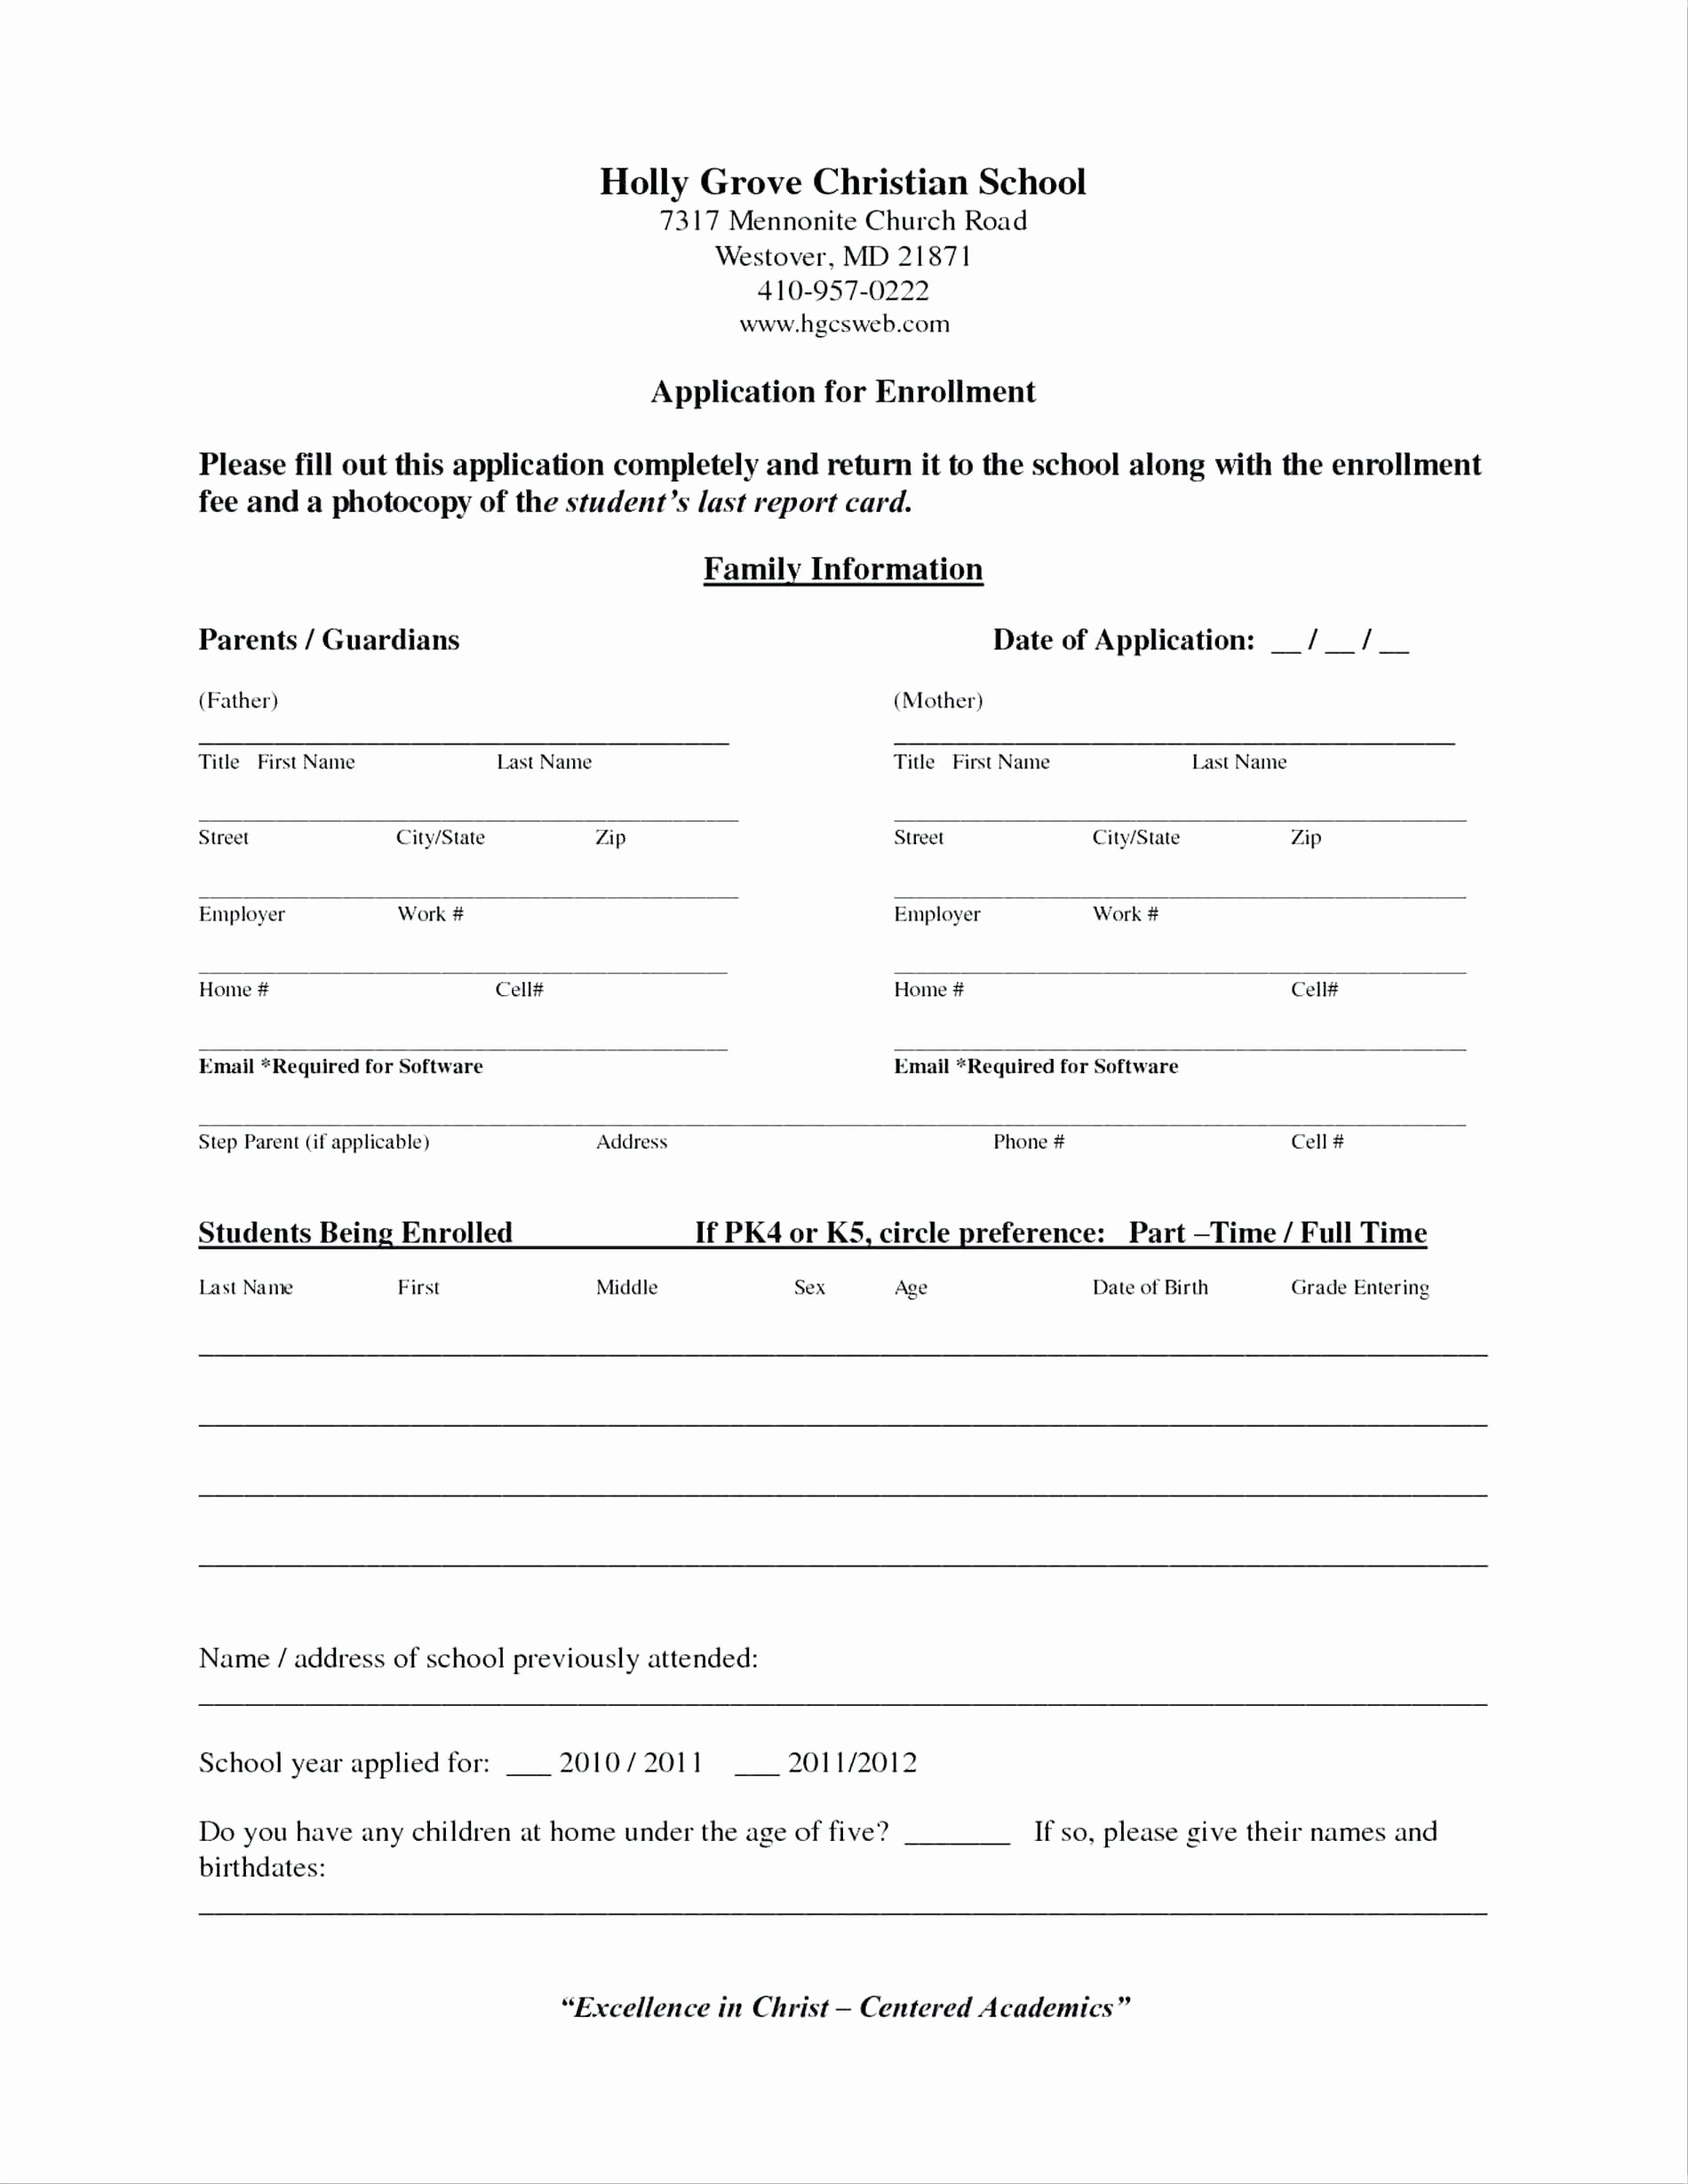 Nc Separation Agreement Template Inspirational Nc Divorce forms – Courselist